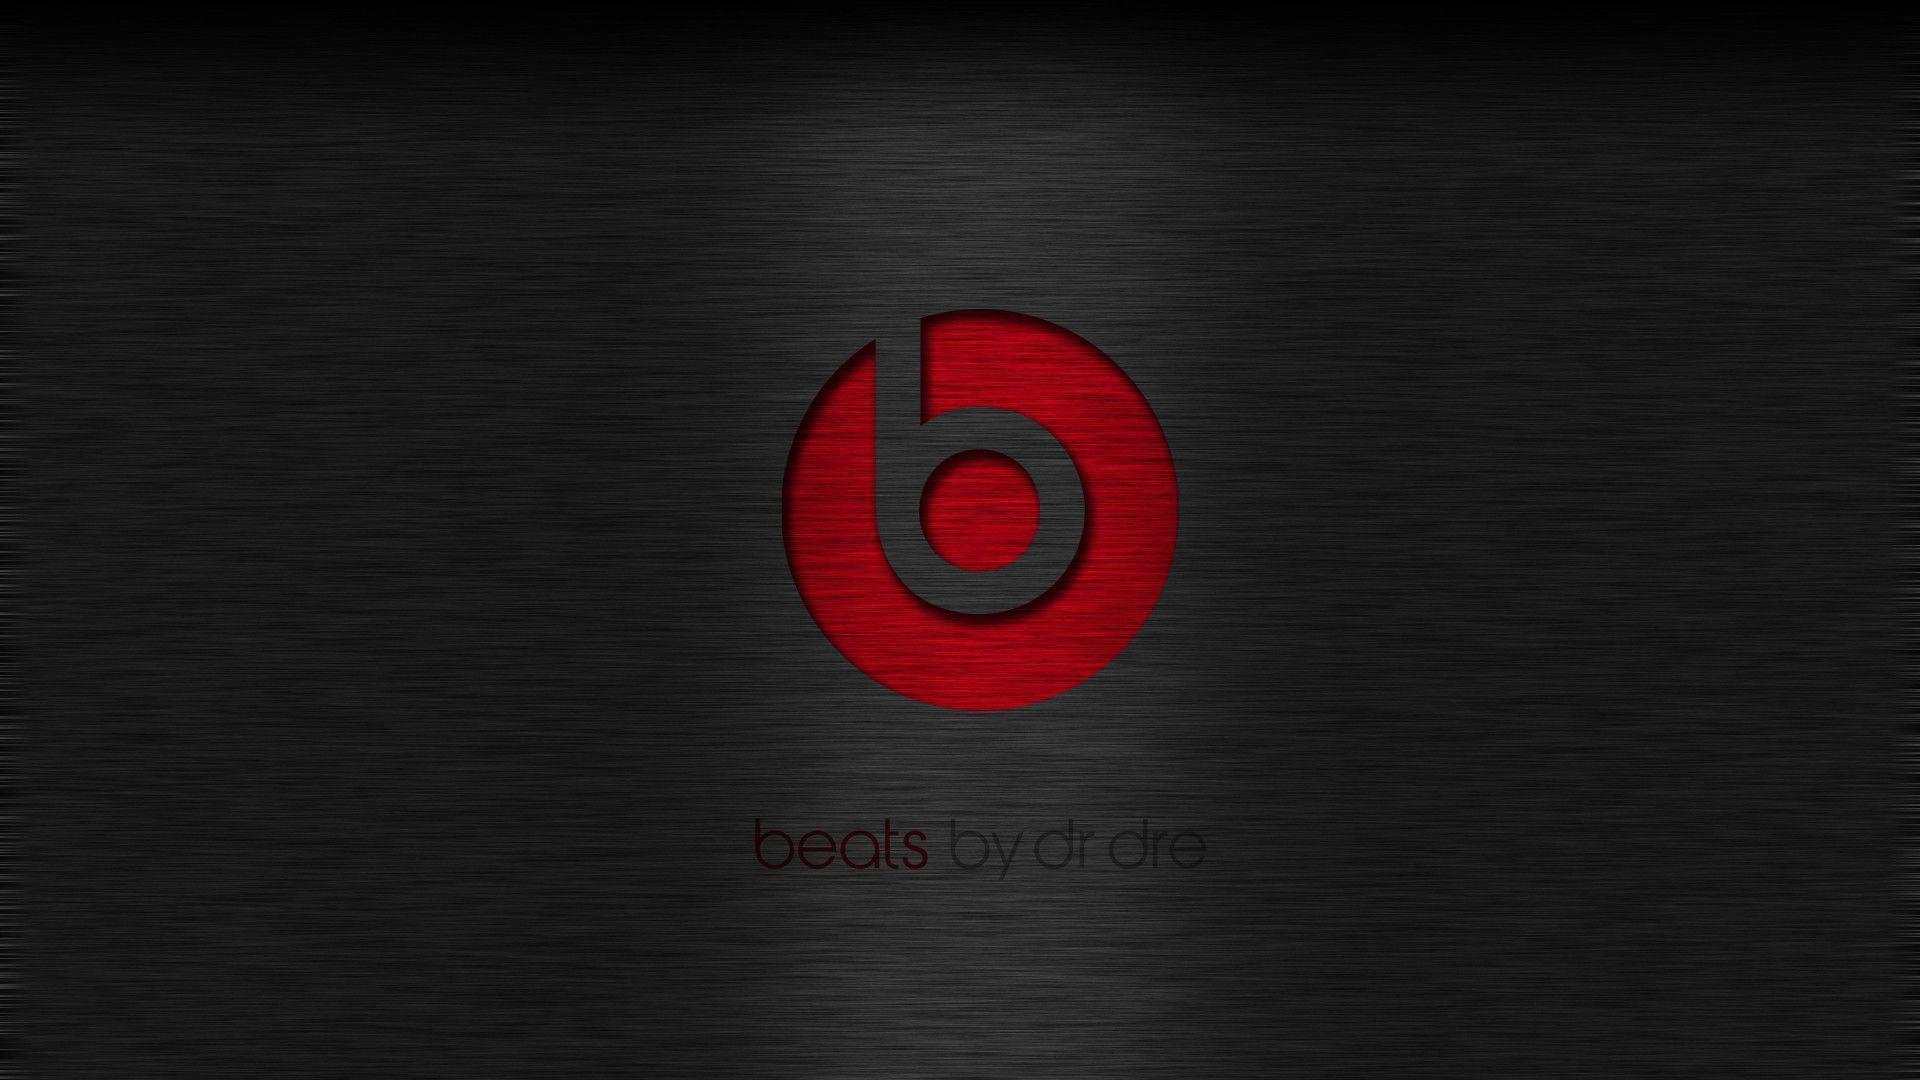 Beats By Dre Images Wallpaper HD